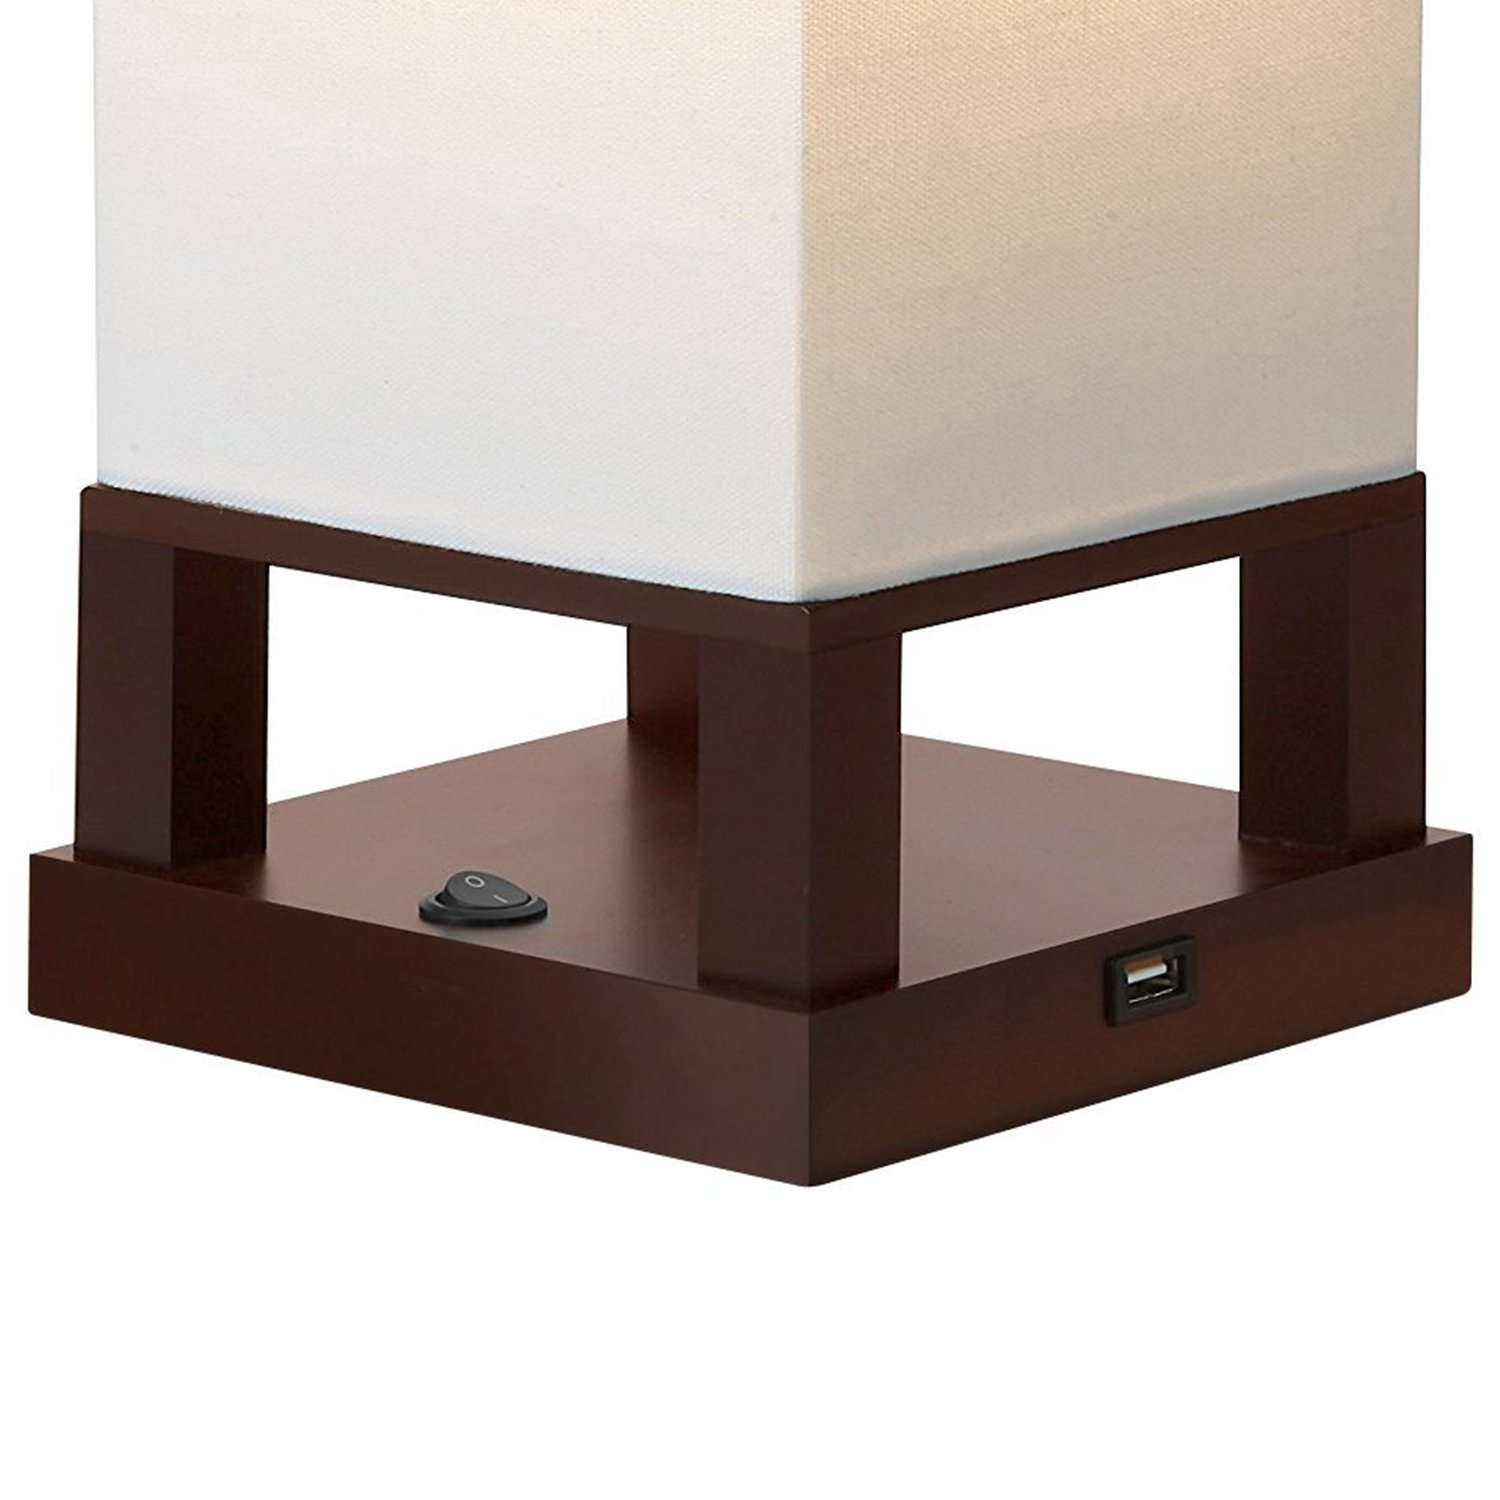 Brightech Maxwell LED USB Side Table & Desk Lamp – Modern Asian Style Lamp with Wood Frame & Soft, Ambient Lighting Perfect for Living Room Bedside Nightstand Light- Energy Efficient- Havanah Brown by Brightech (Image #2)